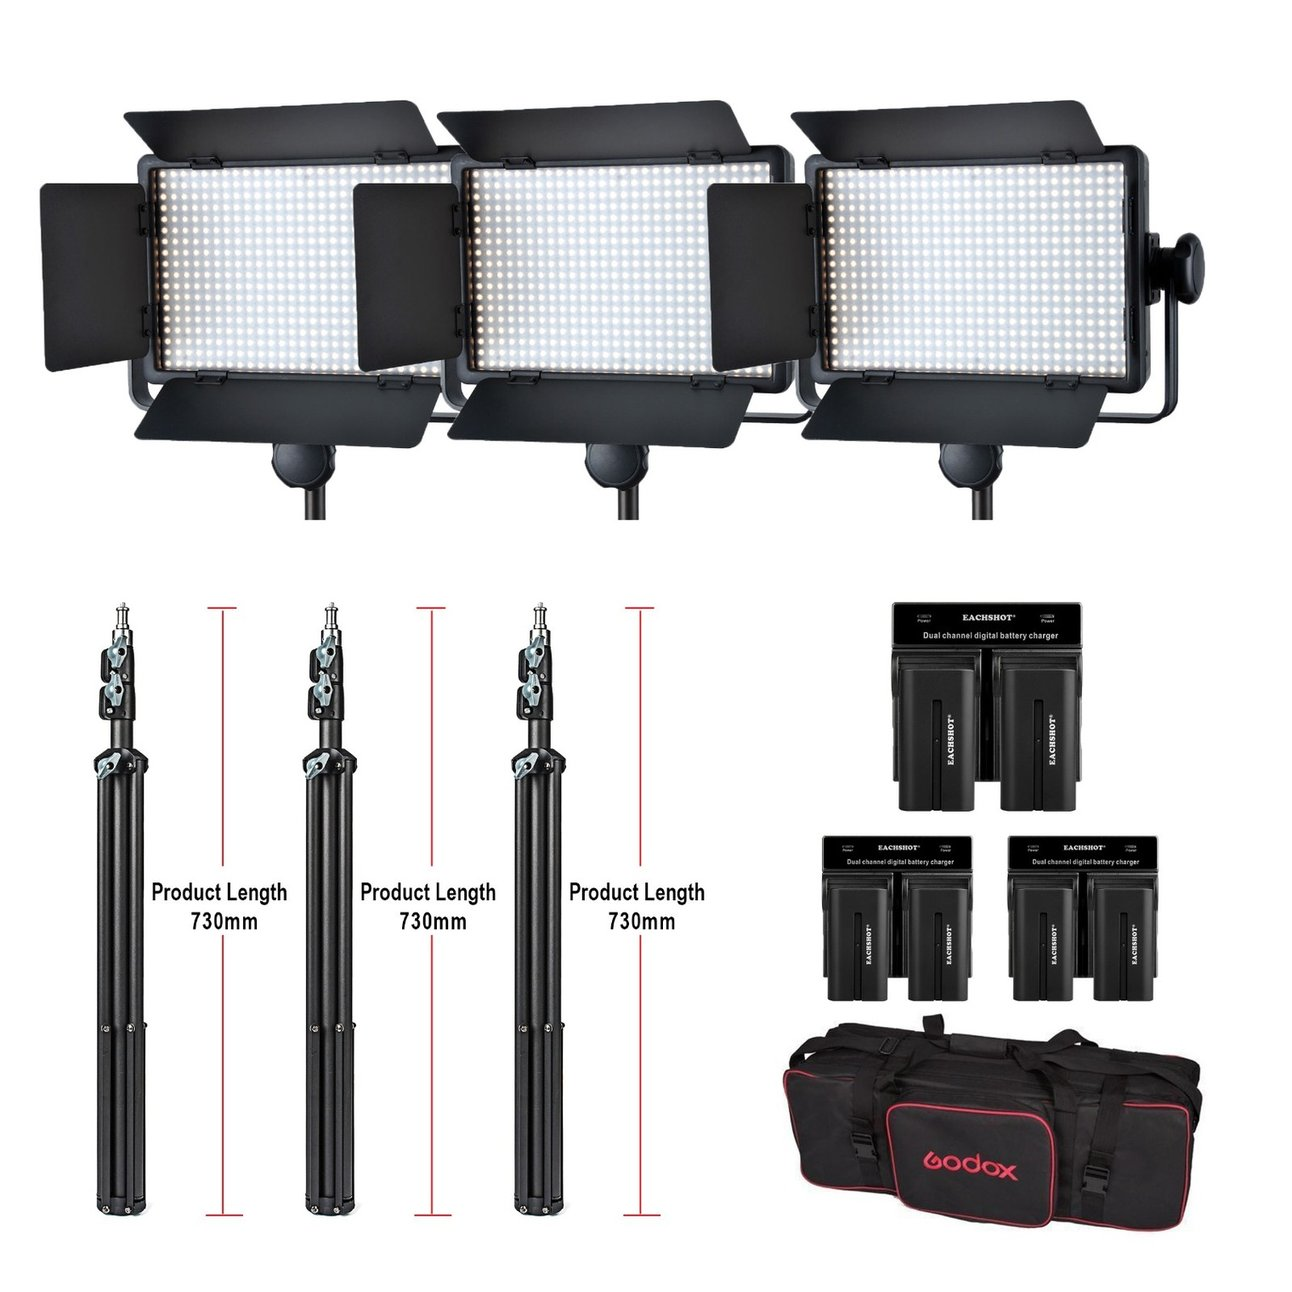 Godox 3x LED500W Kit 5600K 8700LUX LED Video Continuous Light Lamp Panel + stand + battery + battery charger W/ carrying Bag godox professional led video light led500c changeable version 3300k 5600k battery dual charger 2m light stnad